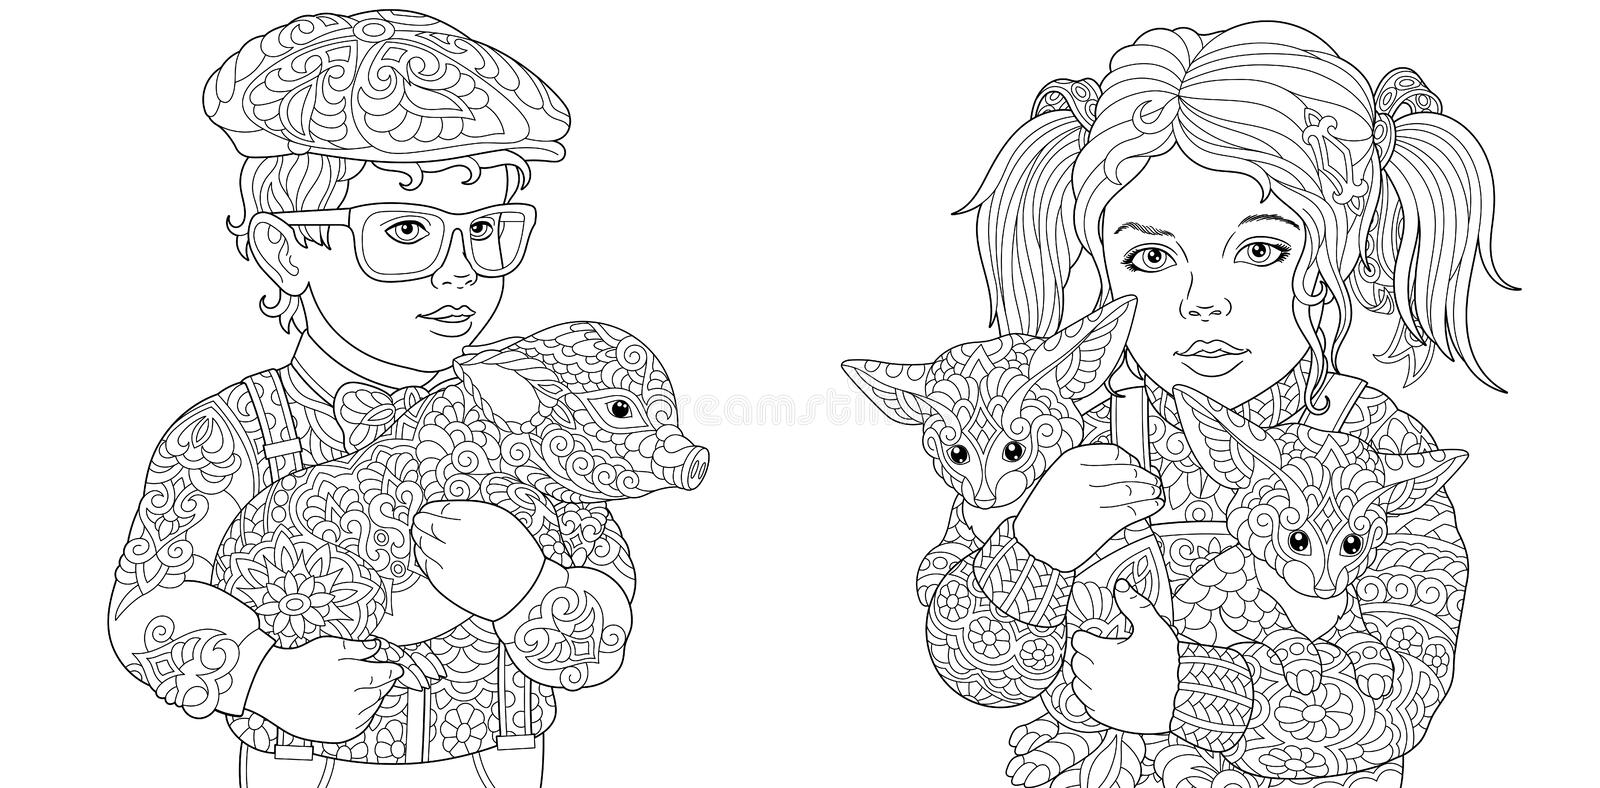 Zentangle art. Coloring Pages. Coloring Book for adults. Colouring pictures with children embracing pig and foxes. Vector royalty free stock image